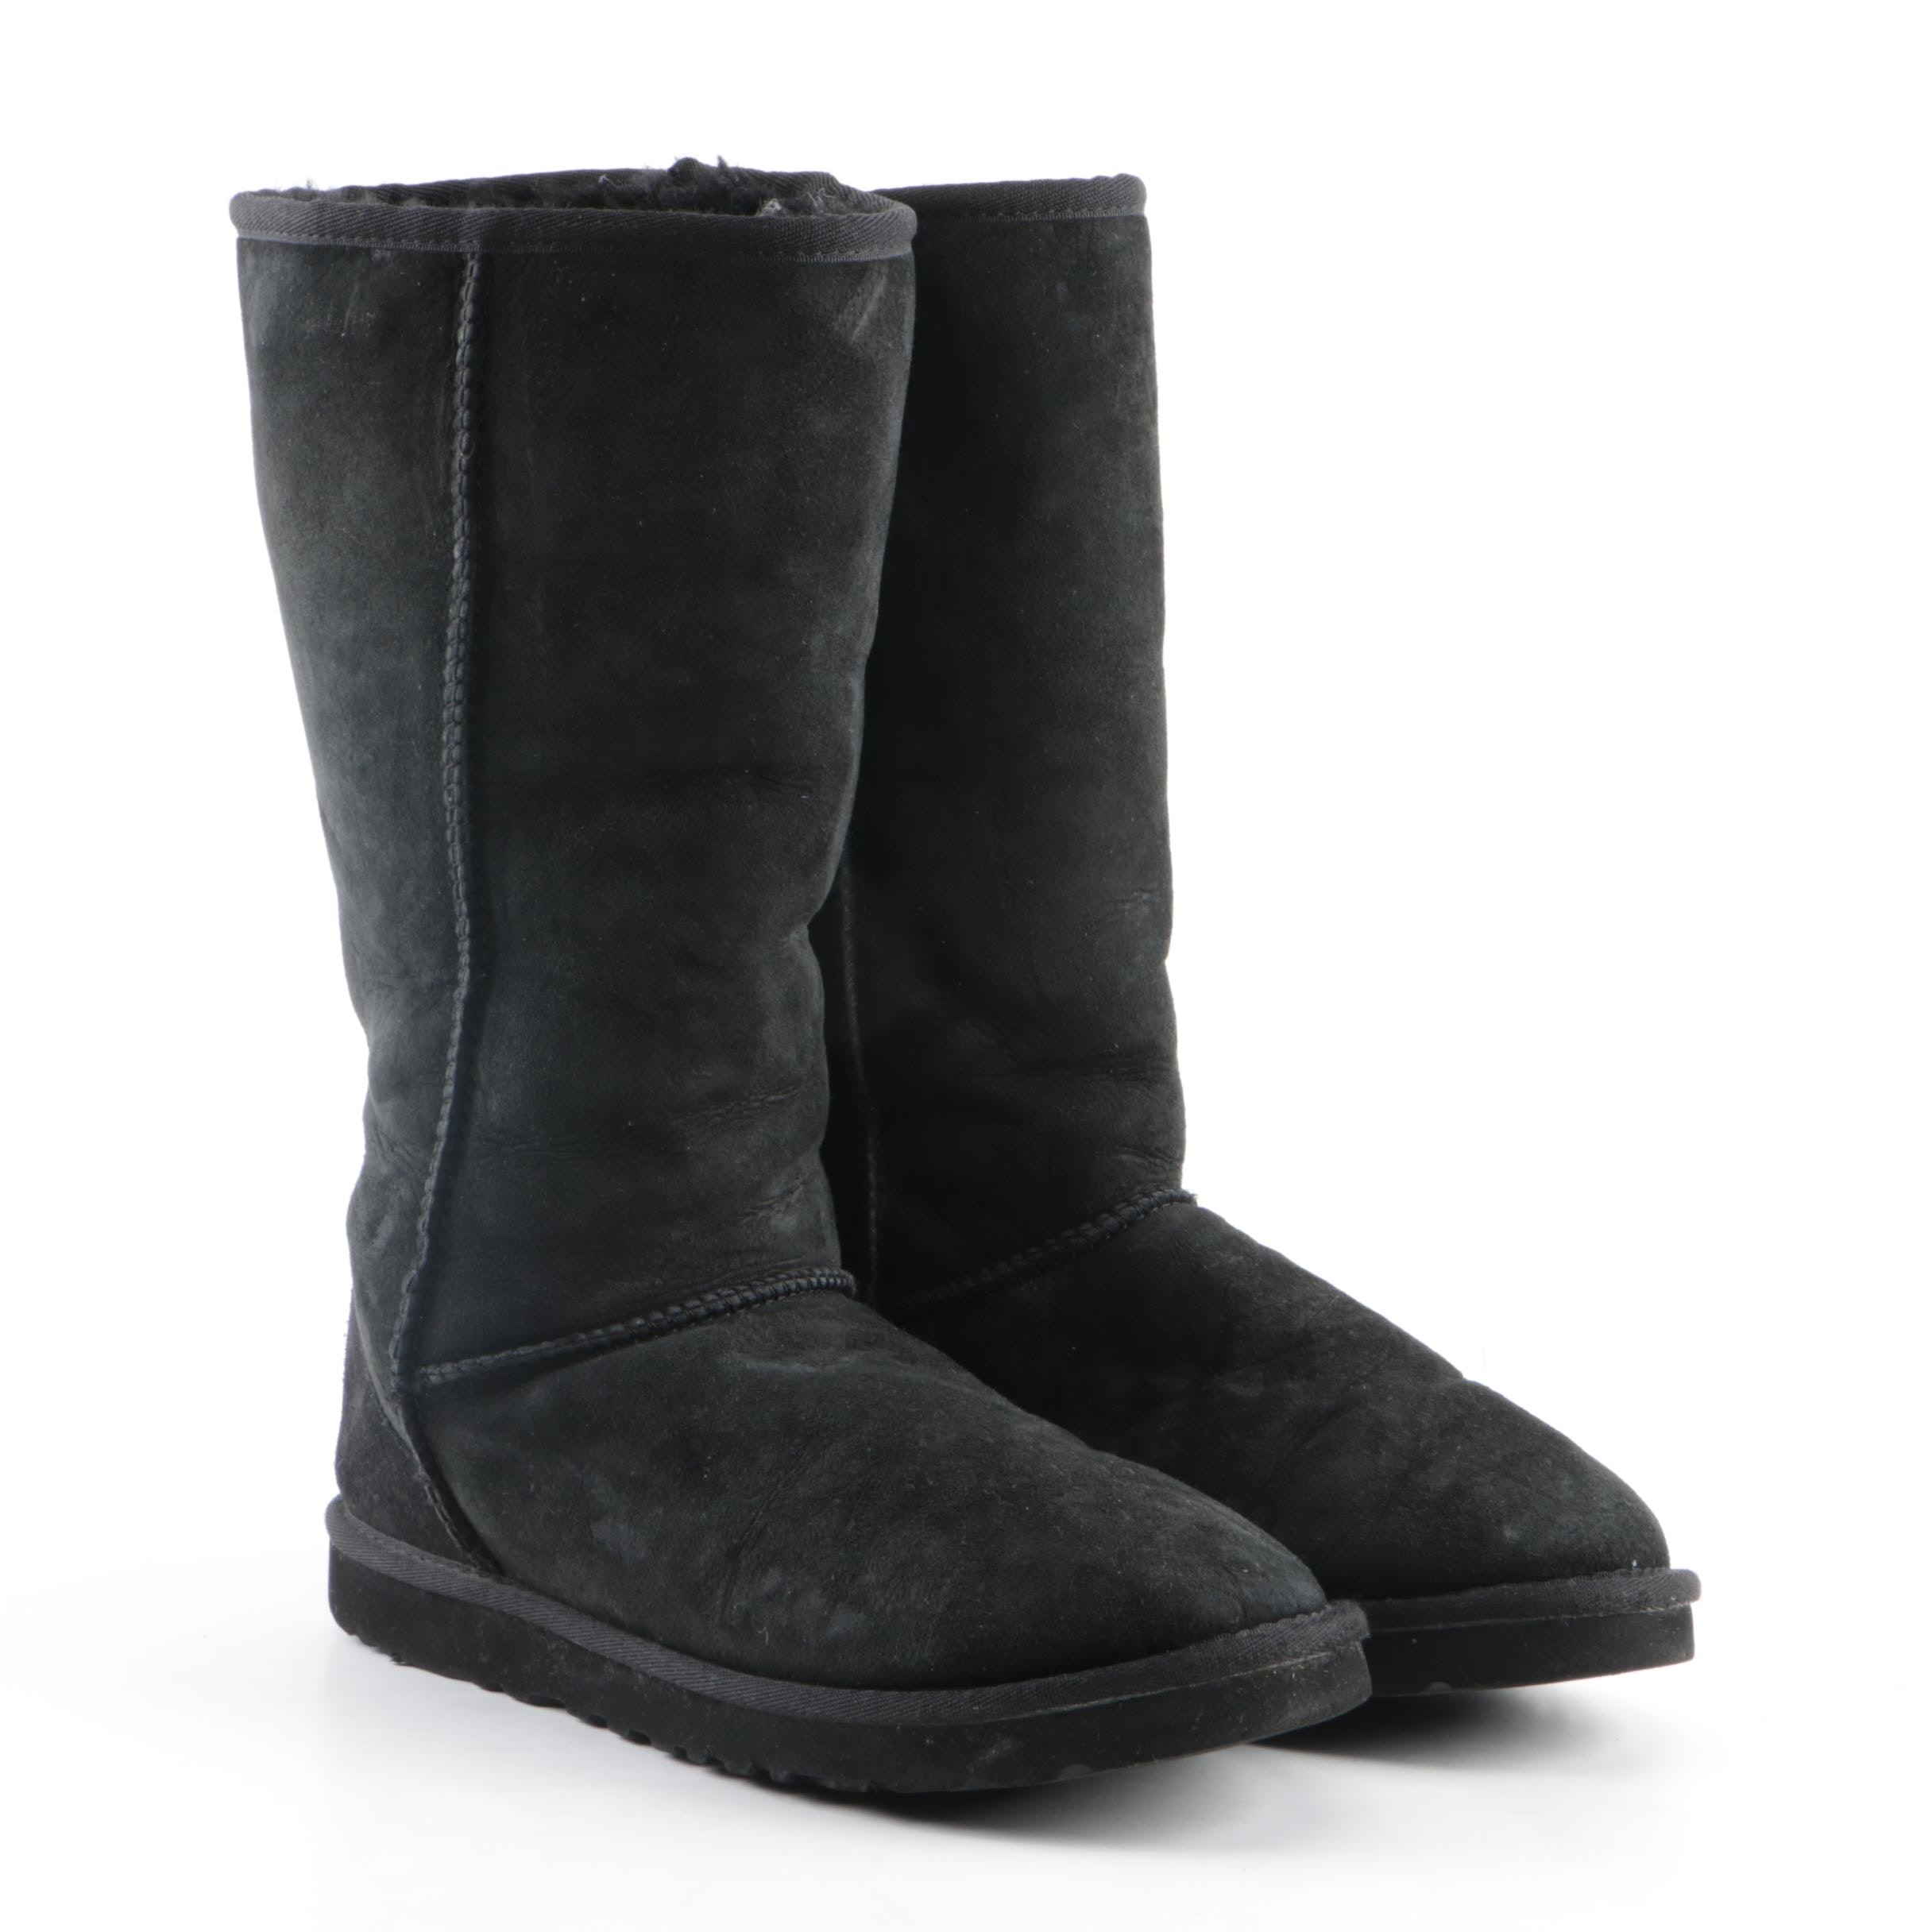 Women's UGG Australia Classic Tall Black Suede and Shearling Boots